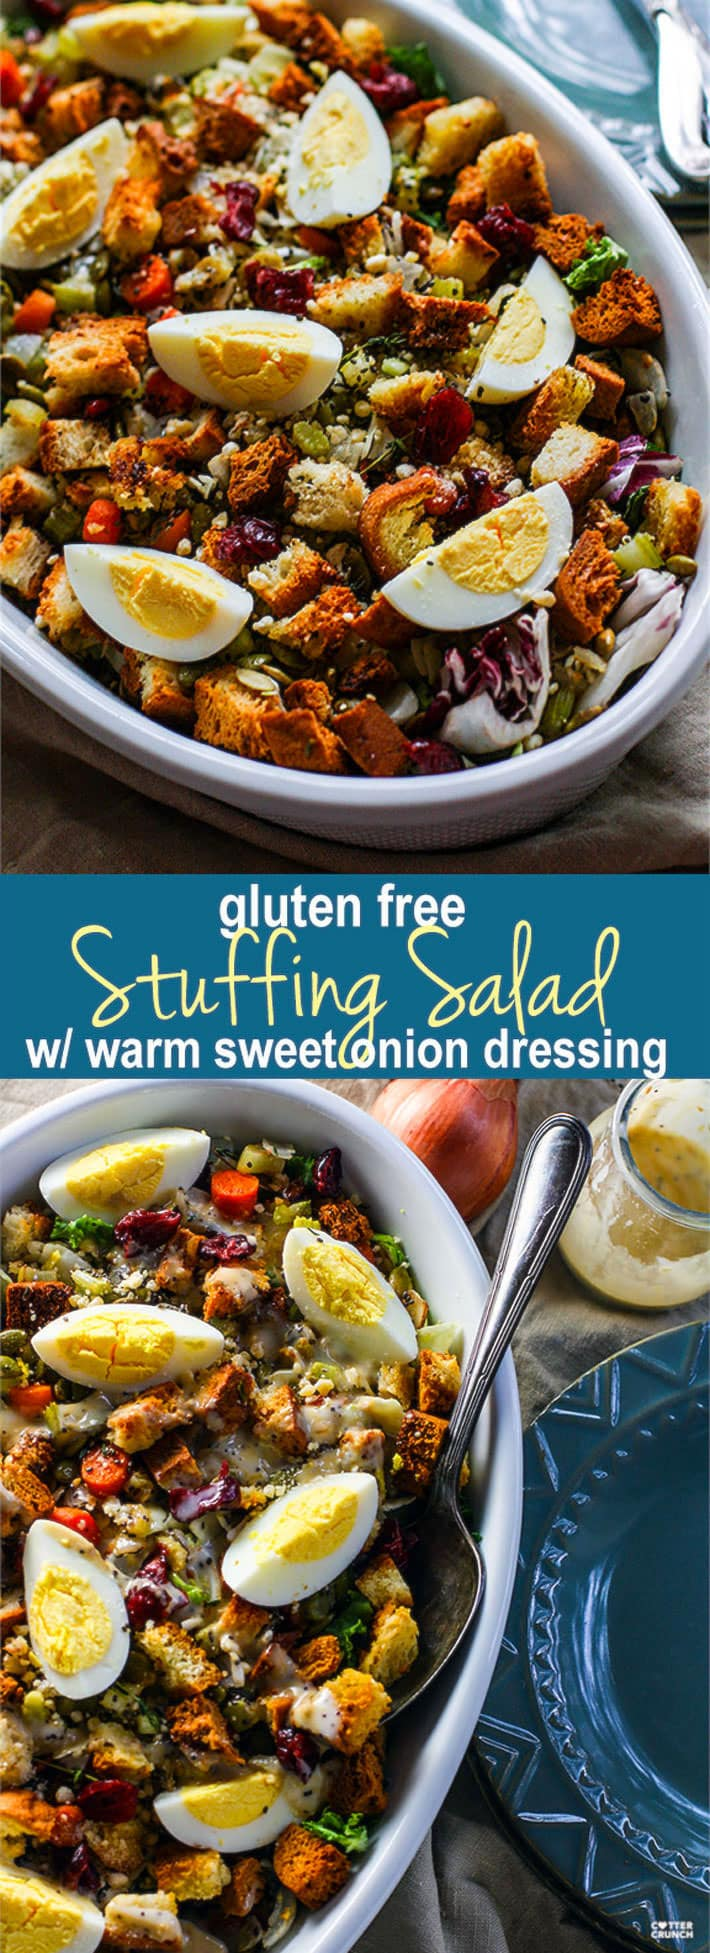 Gluten Free Stuffing Salad with Sweet Onion Dressing! A Gluten Free Stuffing recipe with a twist! This easy Holiday side dish combines the comfort food of traditional stuffing with a healthy winter salad! All tossed together in no time and served with a warm sweet onion dressing. Light and flavorful, but still a way to enjoy a classic holiday side dish